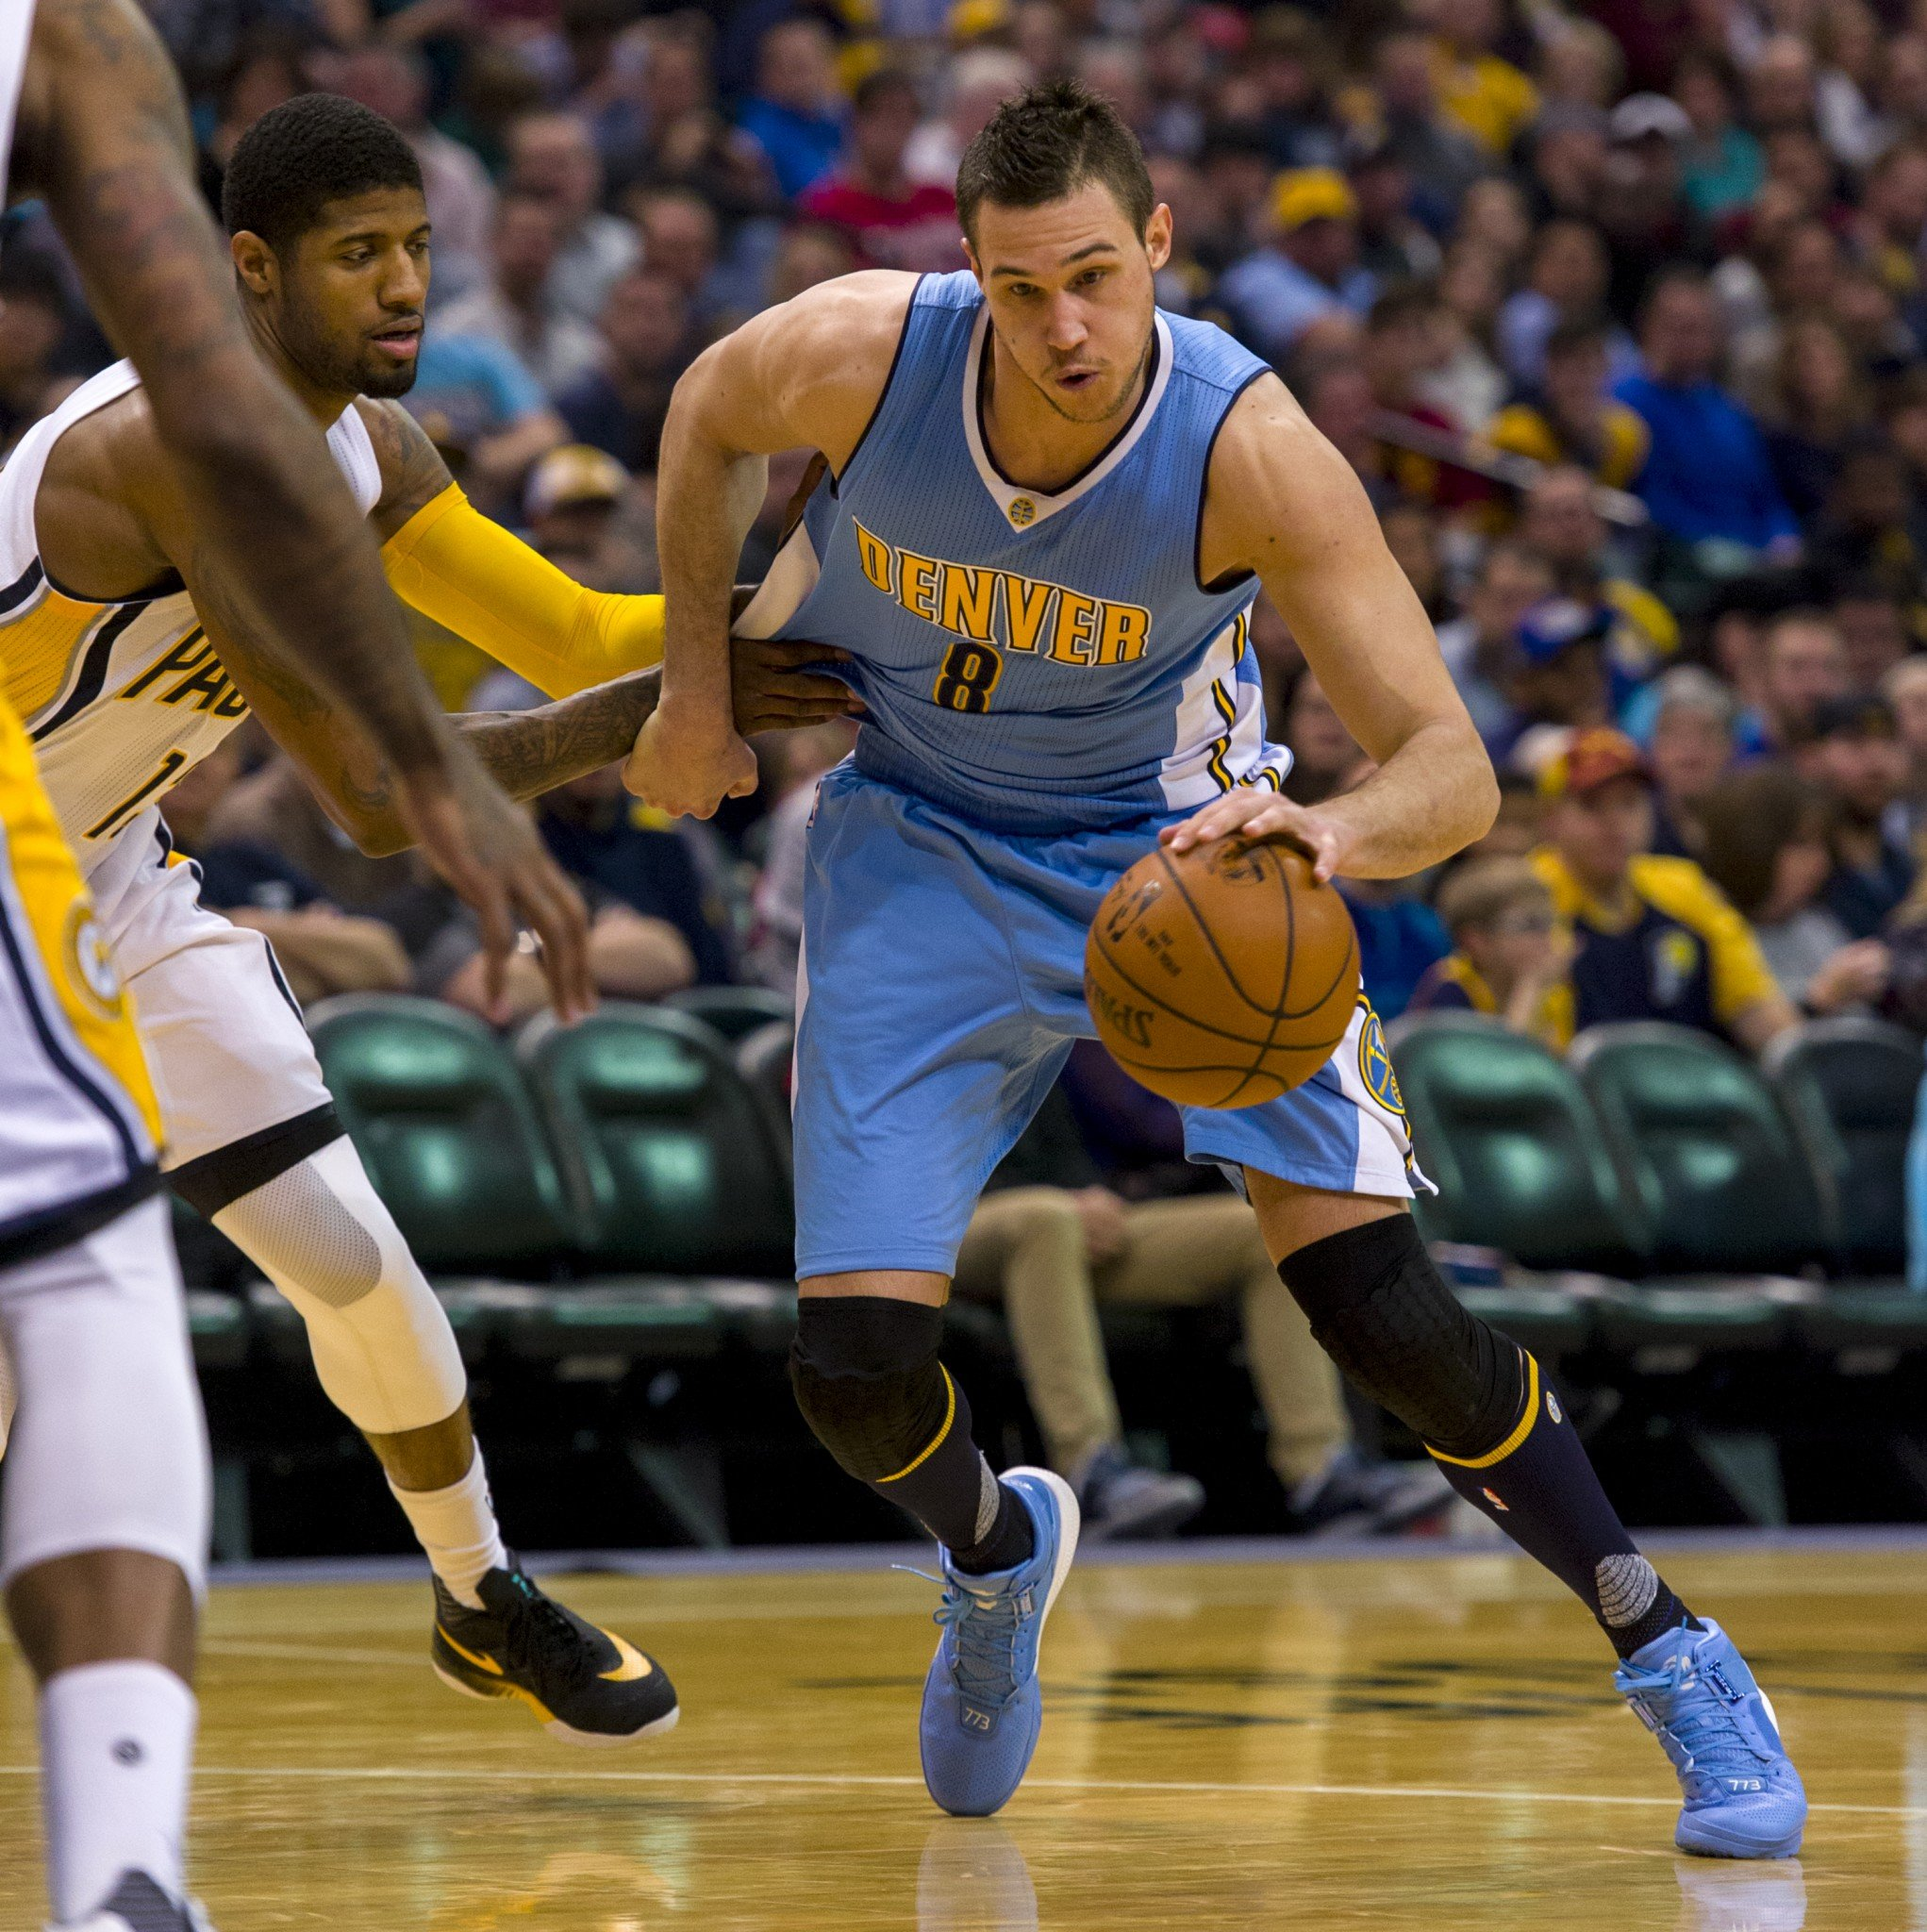 Denver Nuggets forward Danilo Gallinari tries to dribble past the defense of Indiana Pacers forward Paul George during a Jan. 30, 2016, game. (AP/Doug McSchooler)